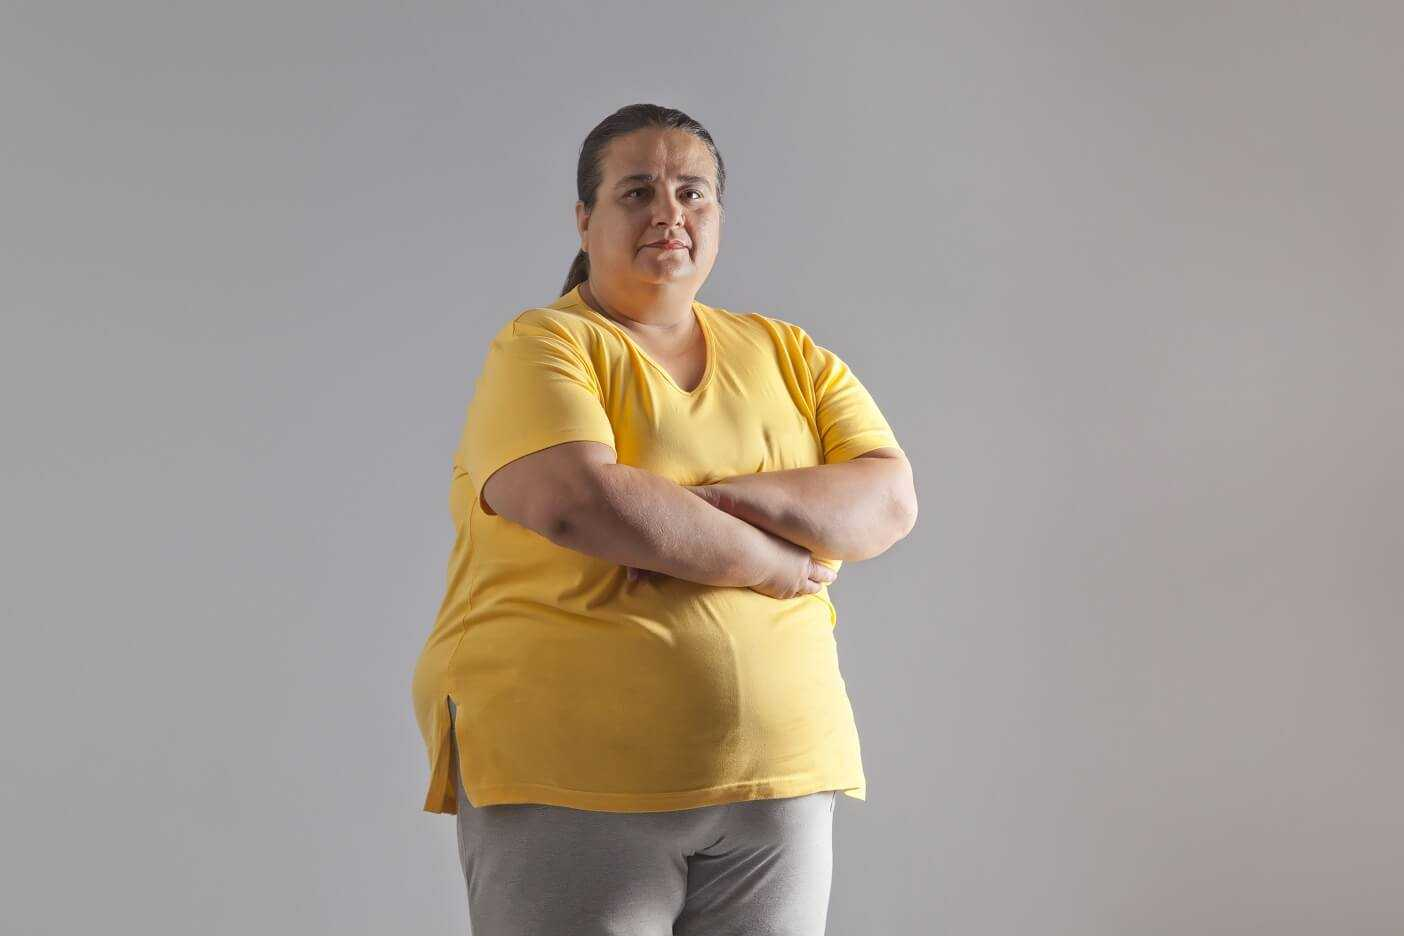 Obese People More Likely To Be Smokers